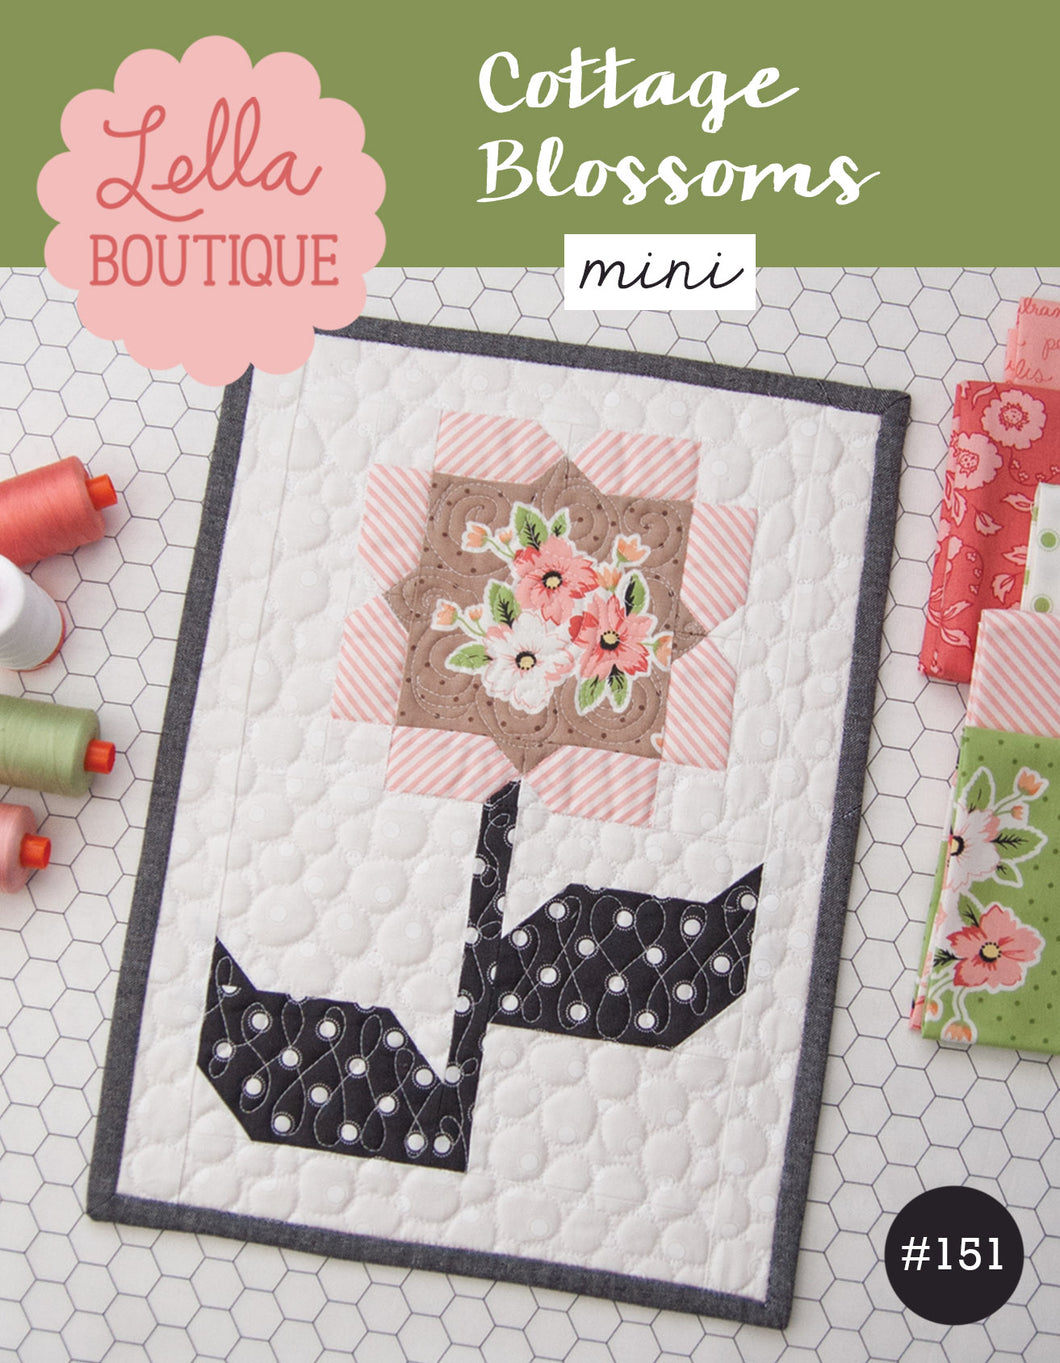 #151 Cottage Blossoms Mini - PDF Pattern